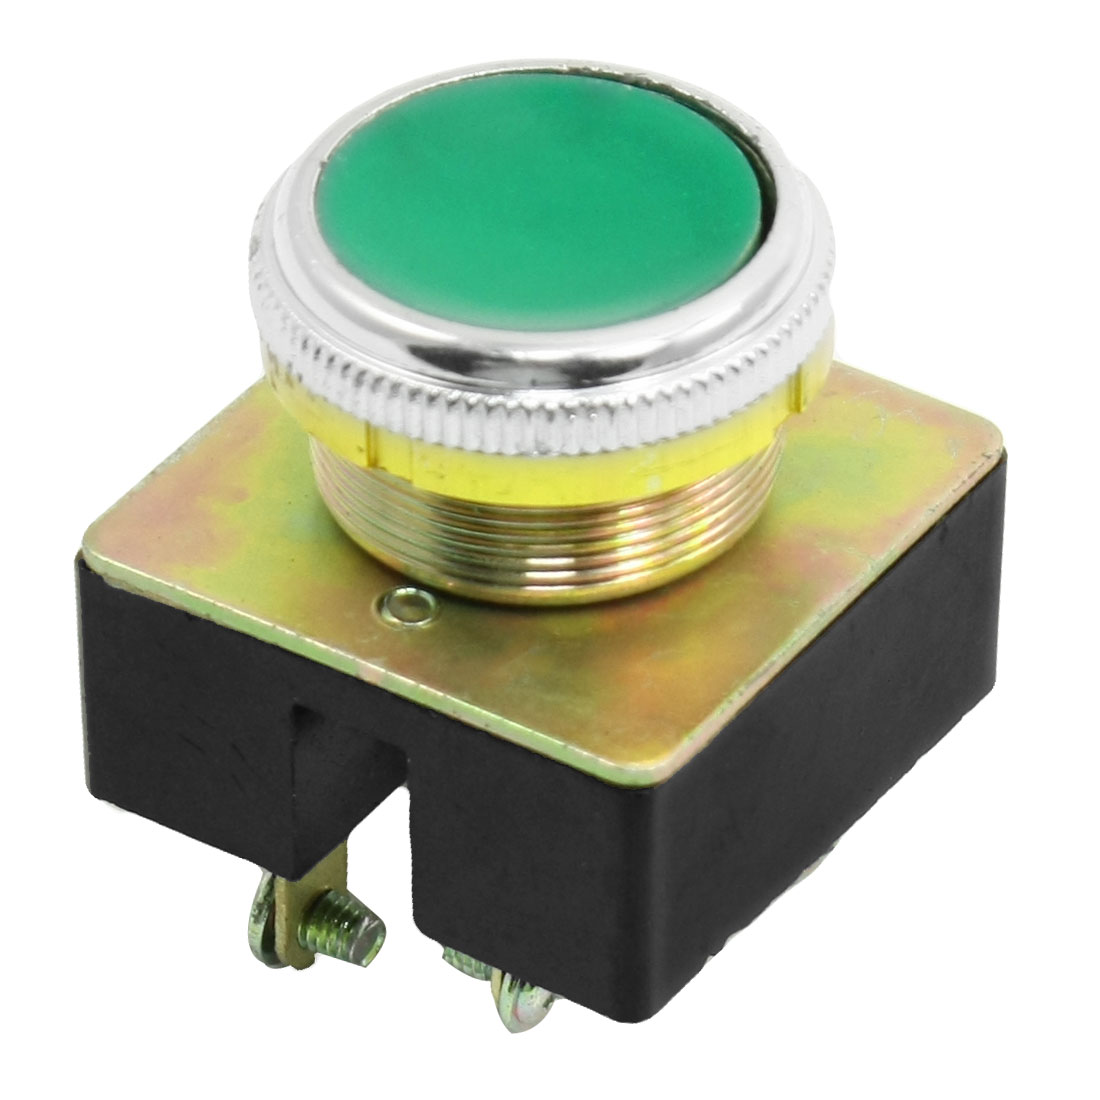 Green-Round-Cap-Momentary-DPST-Contact-4-Pin-Push-Button-Switch-AC-380V